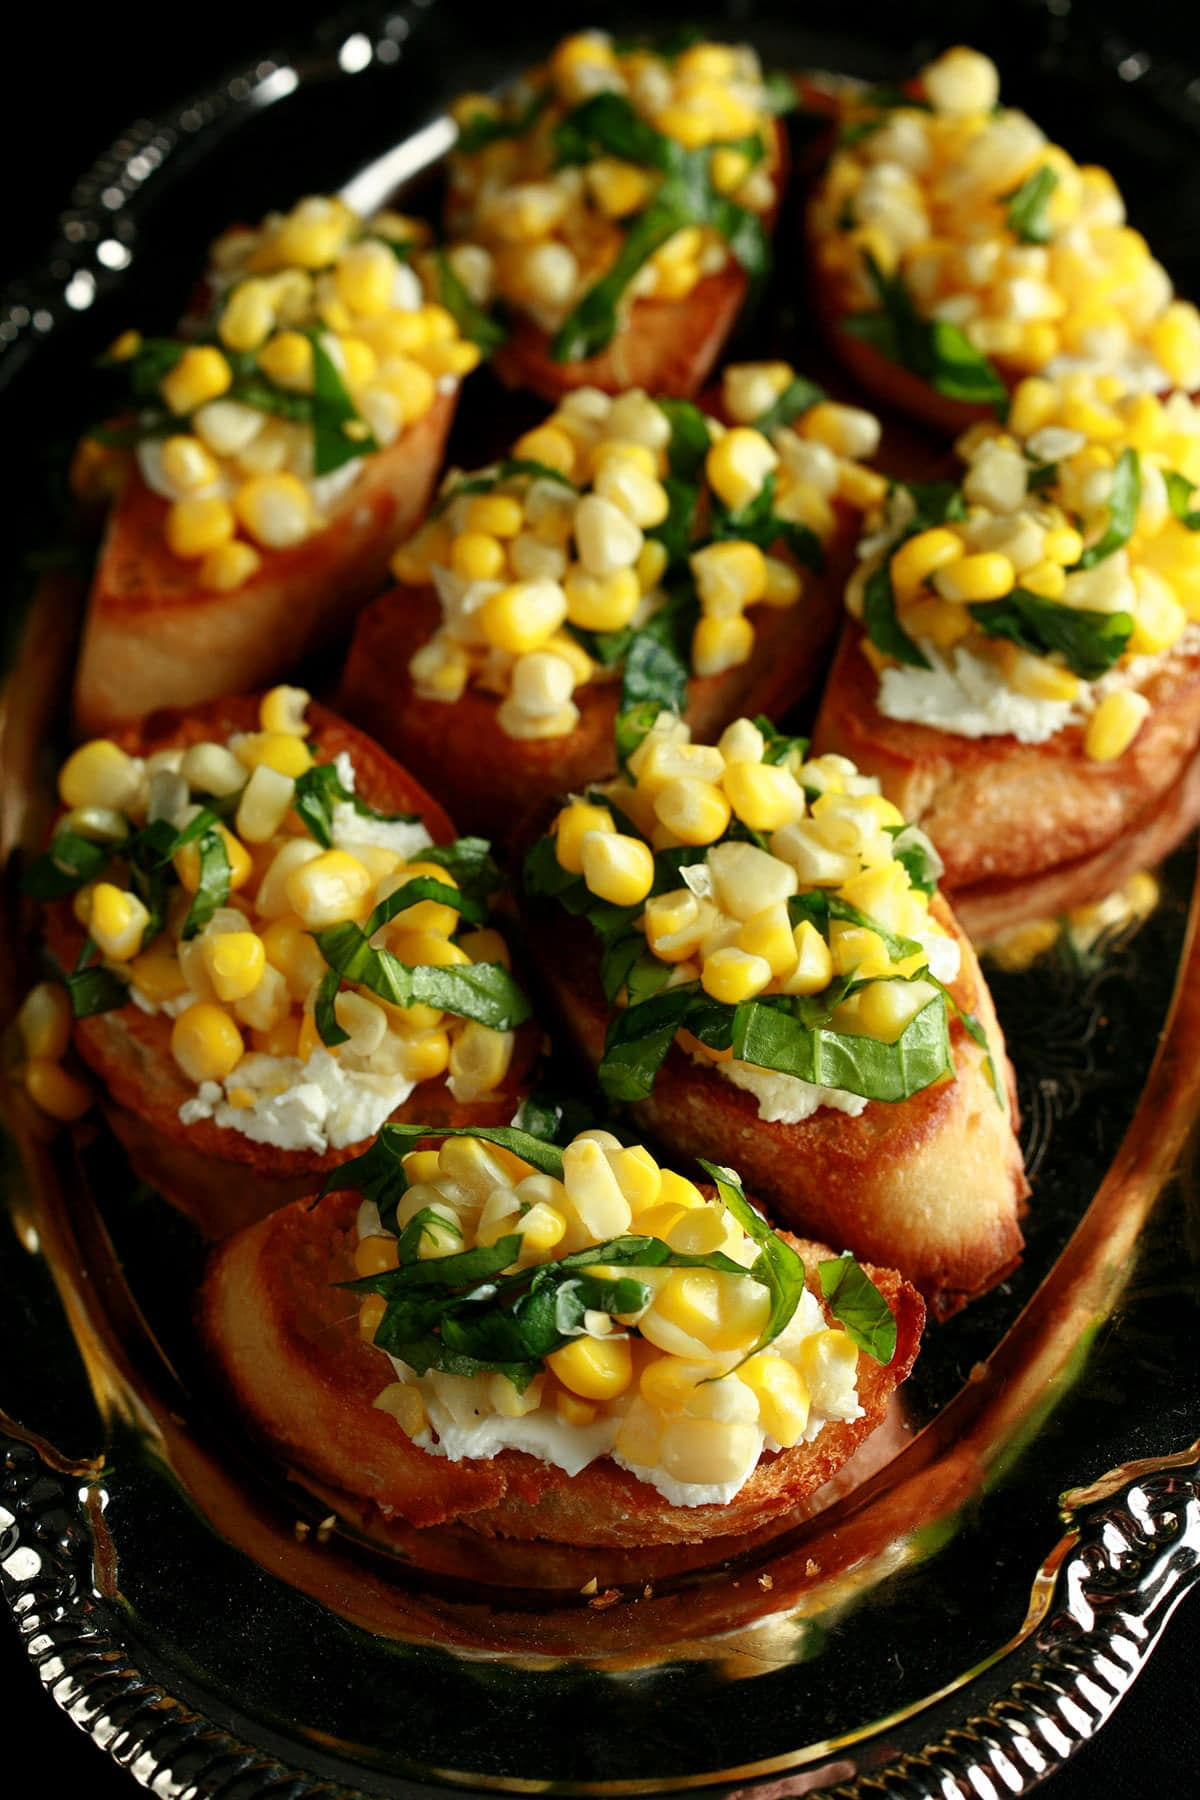 A silver, oval shaped platter, filled with sweet corn bruschetta - slices of toasted baguette, smeared with goat cheese, and topped with sweet corn kernels, basil, and balsamic vinegar.